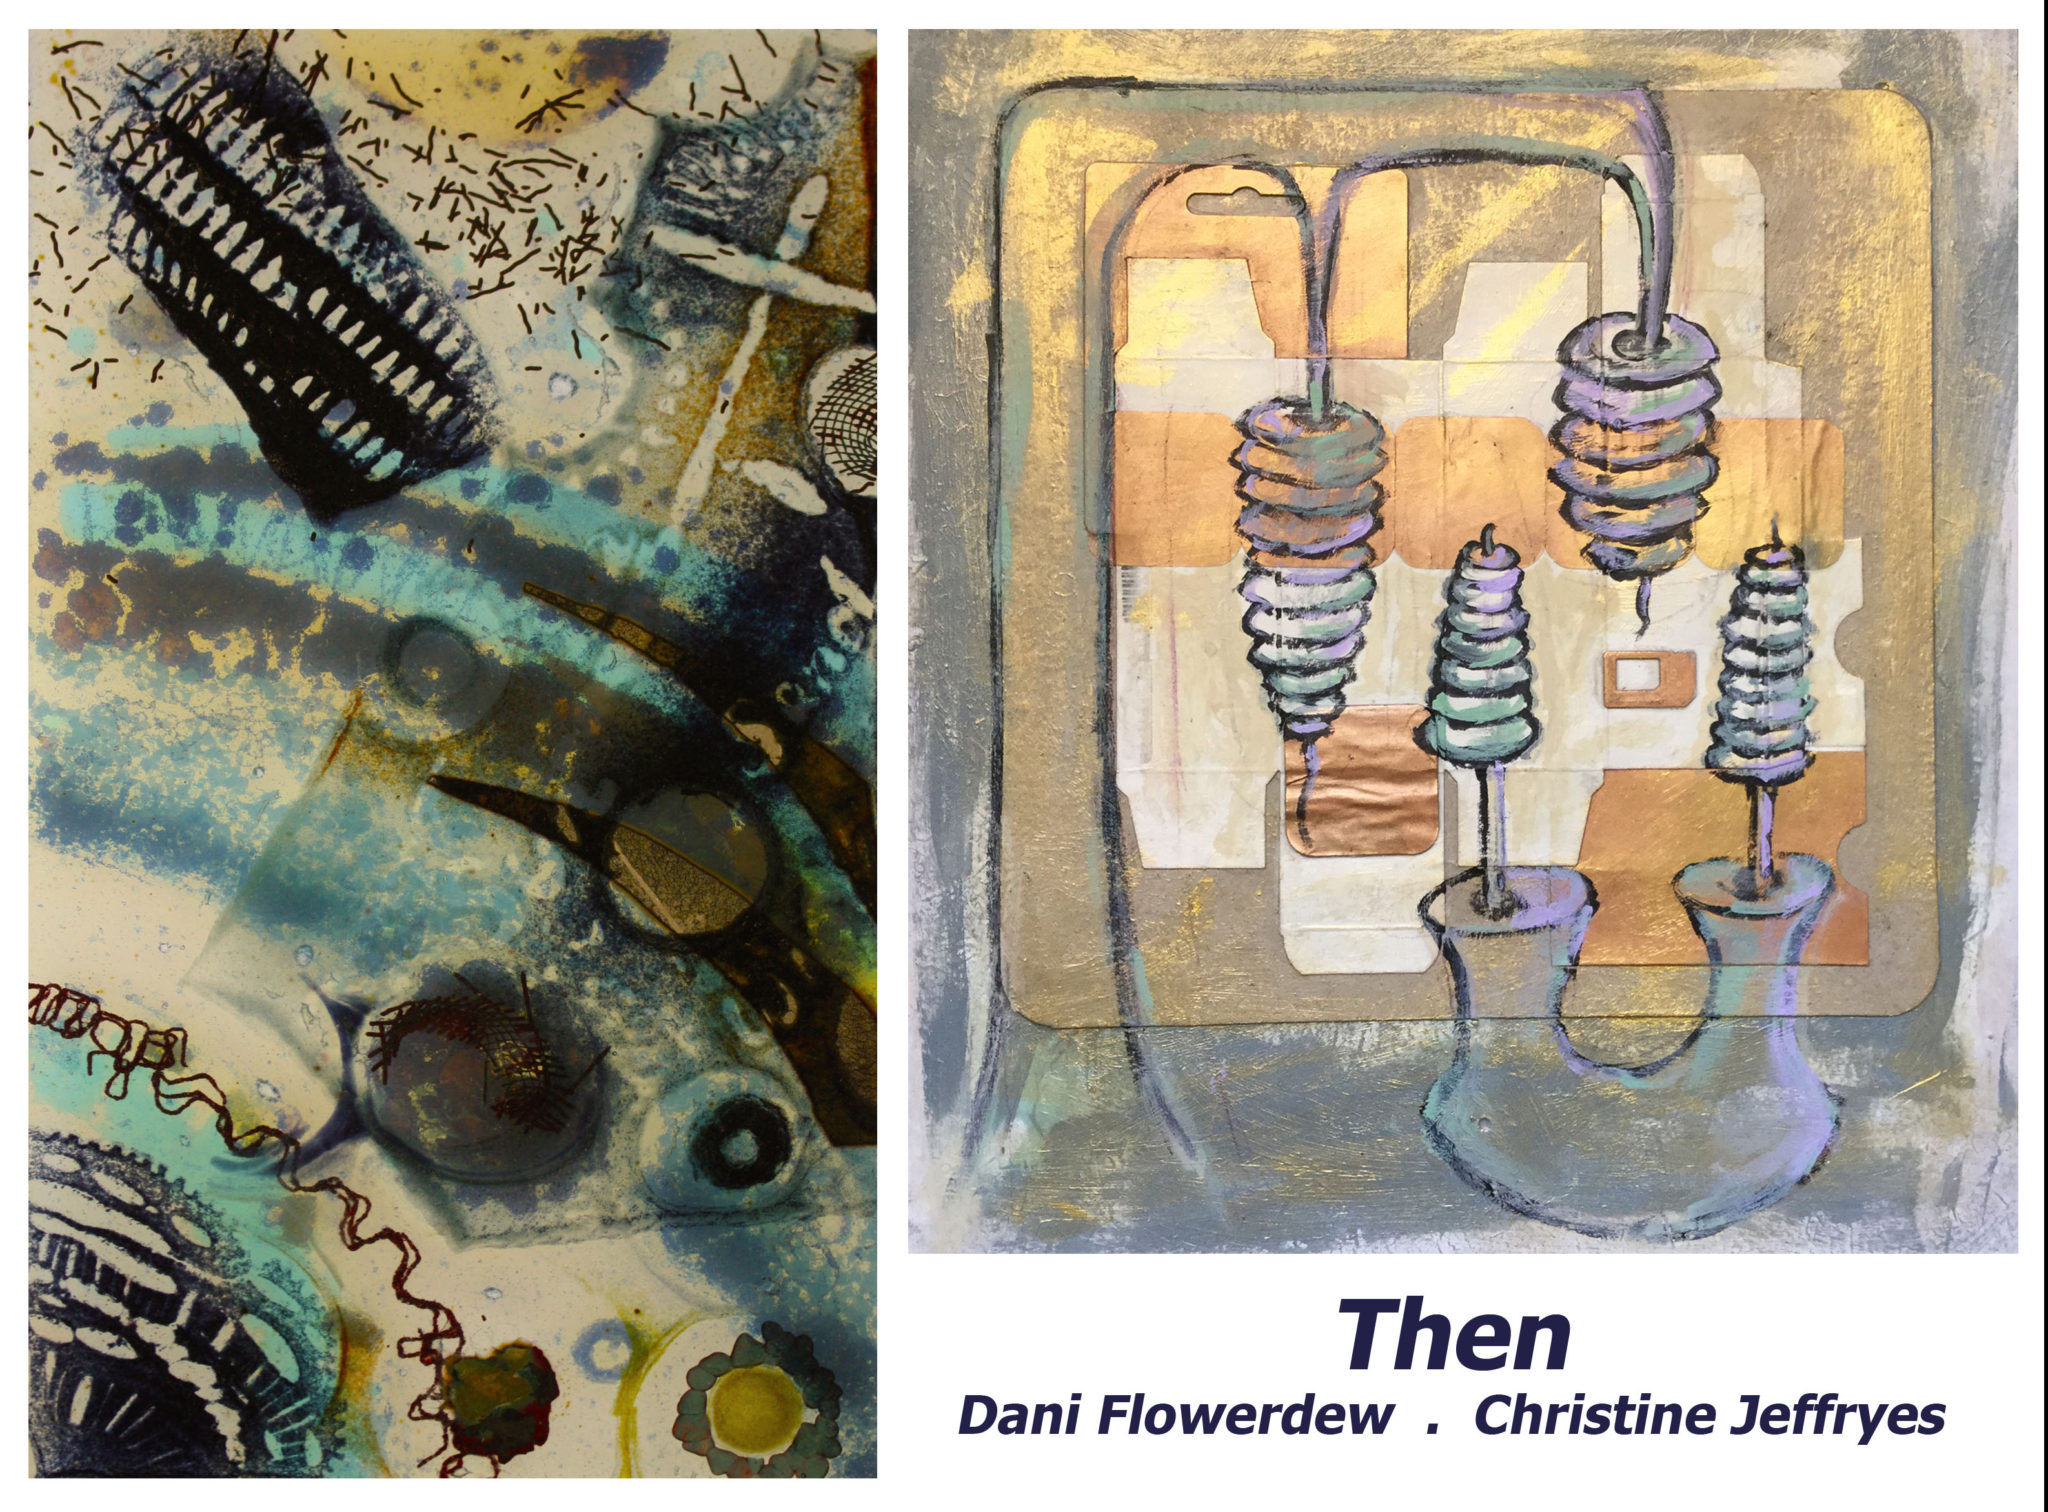 Pie Factory Margate Then exhibition by Christine Jeffryes and Dani Flowerdew